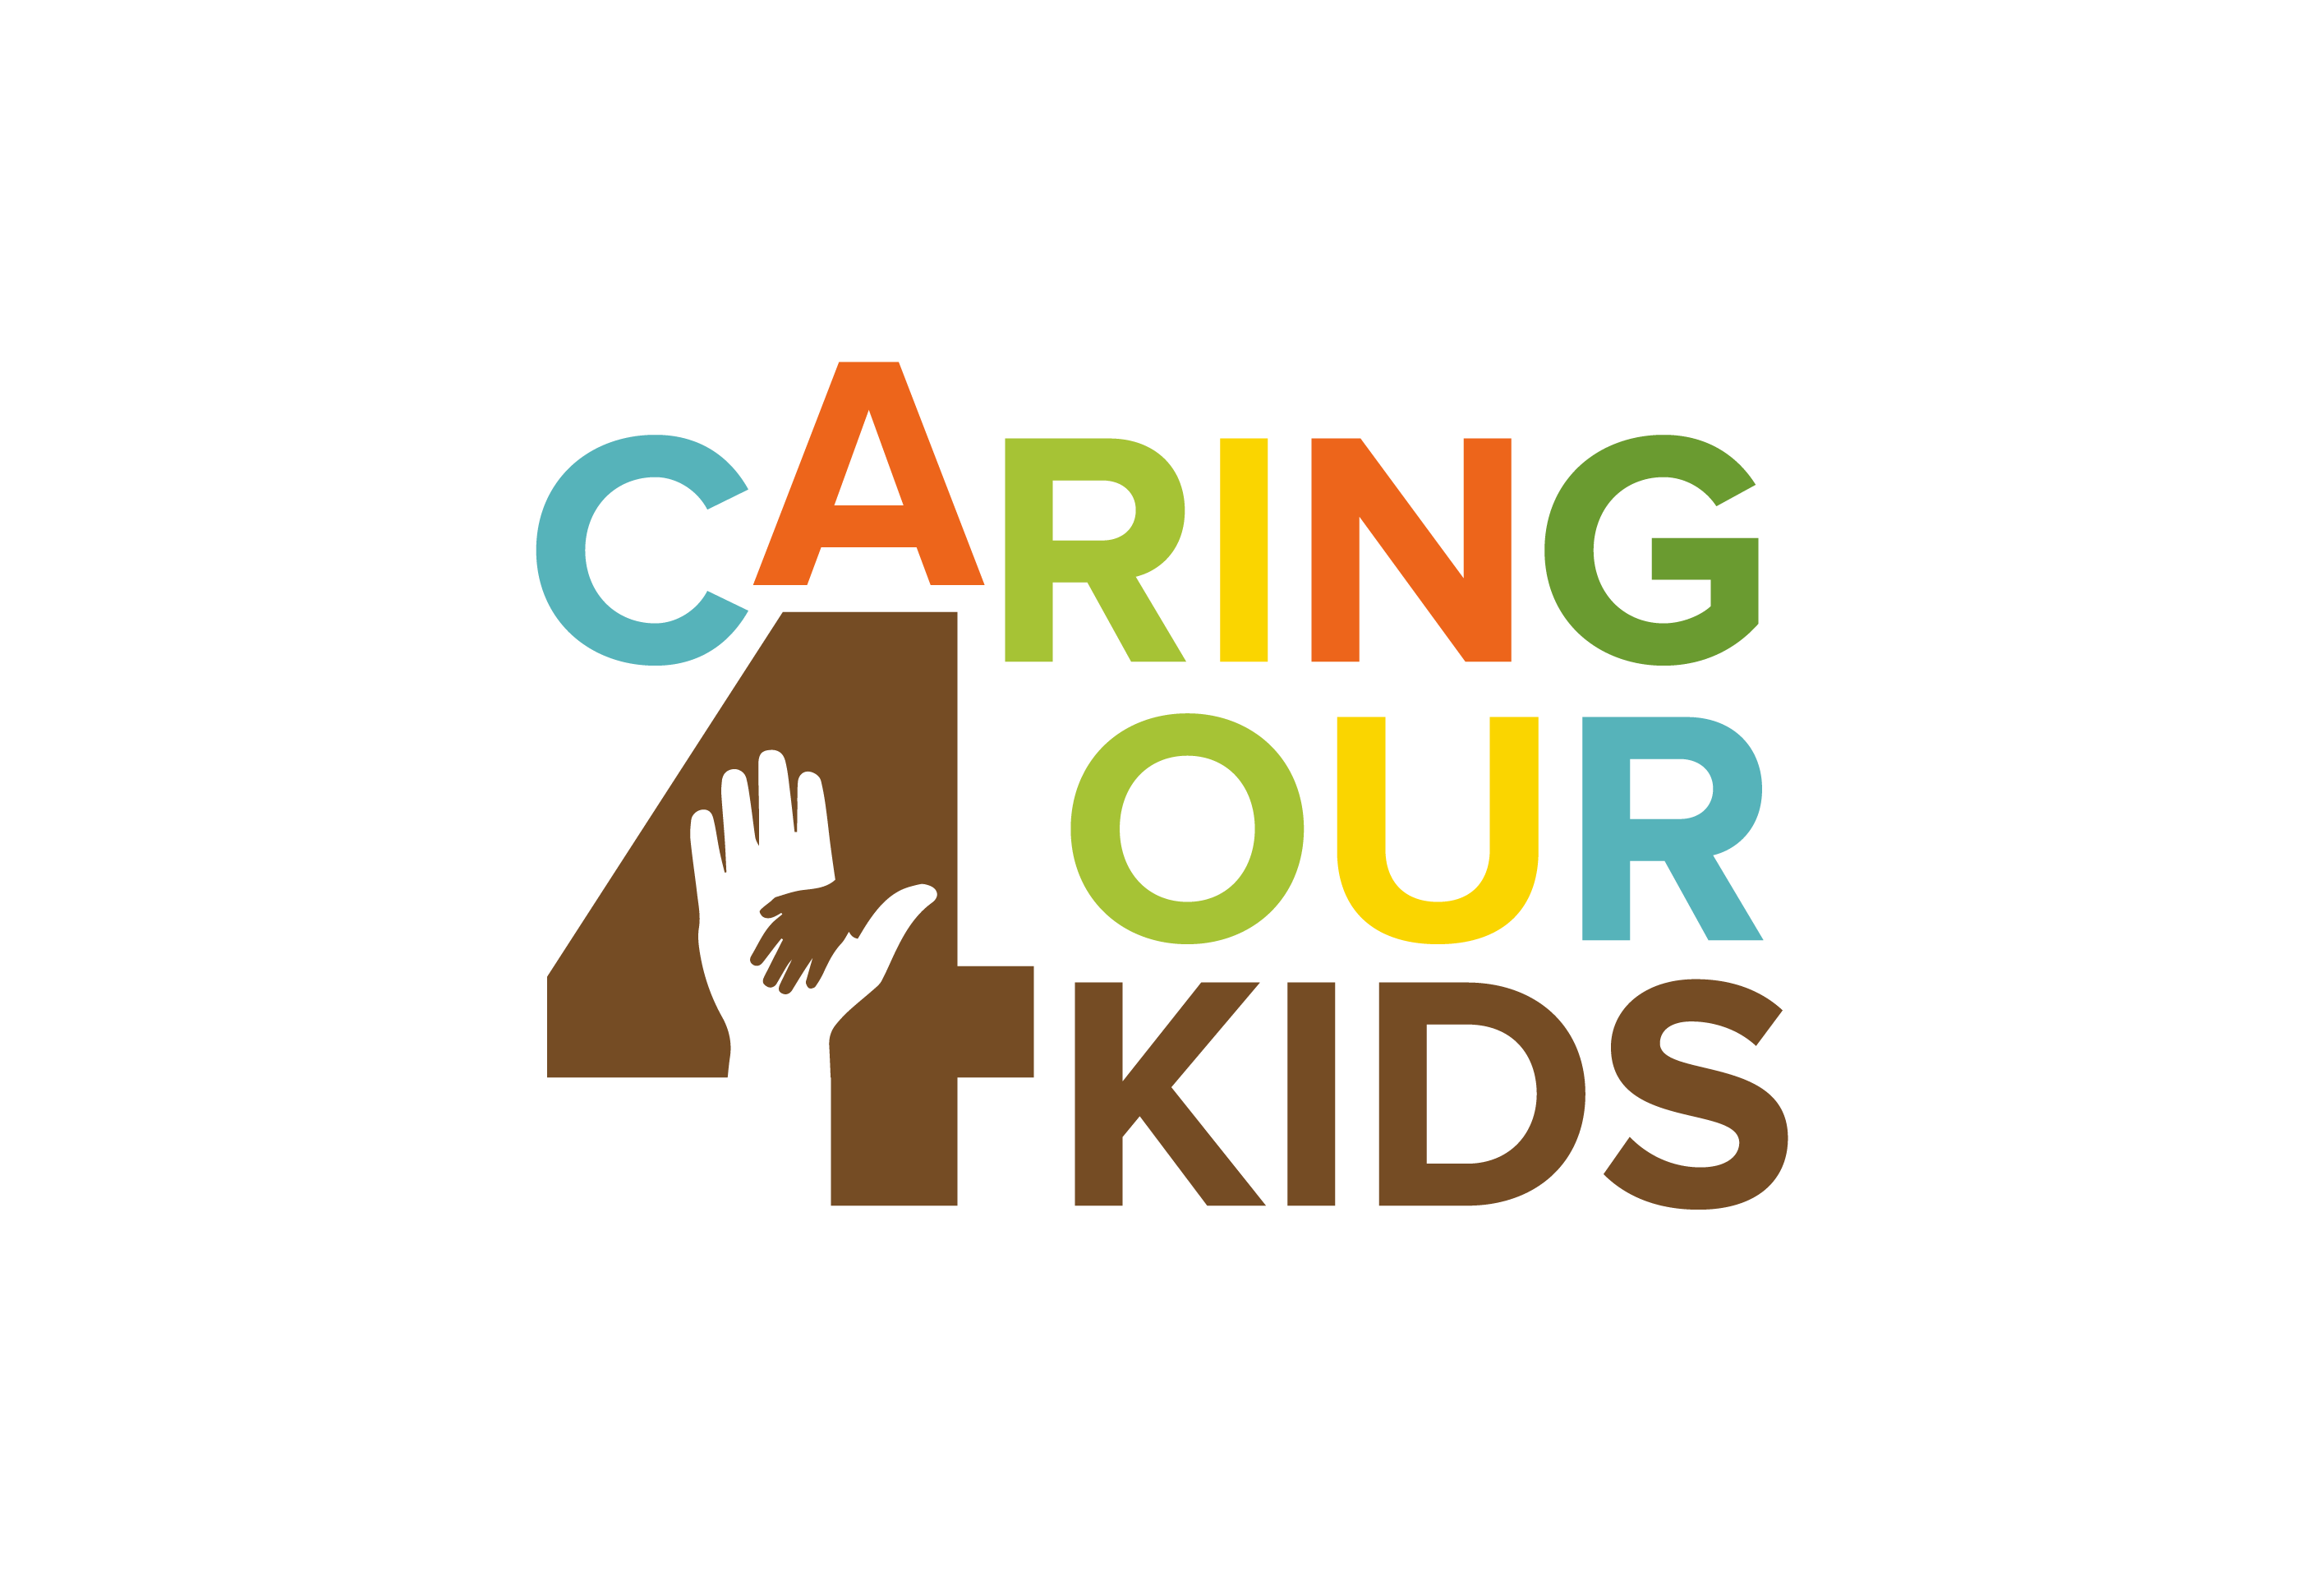 Caring 4 Our Kids logo